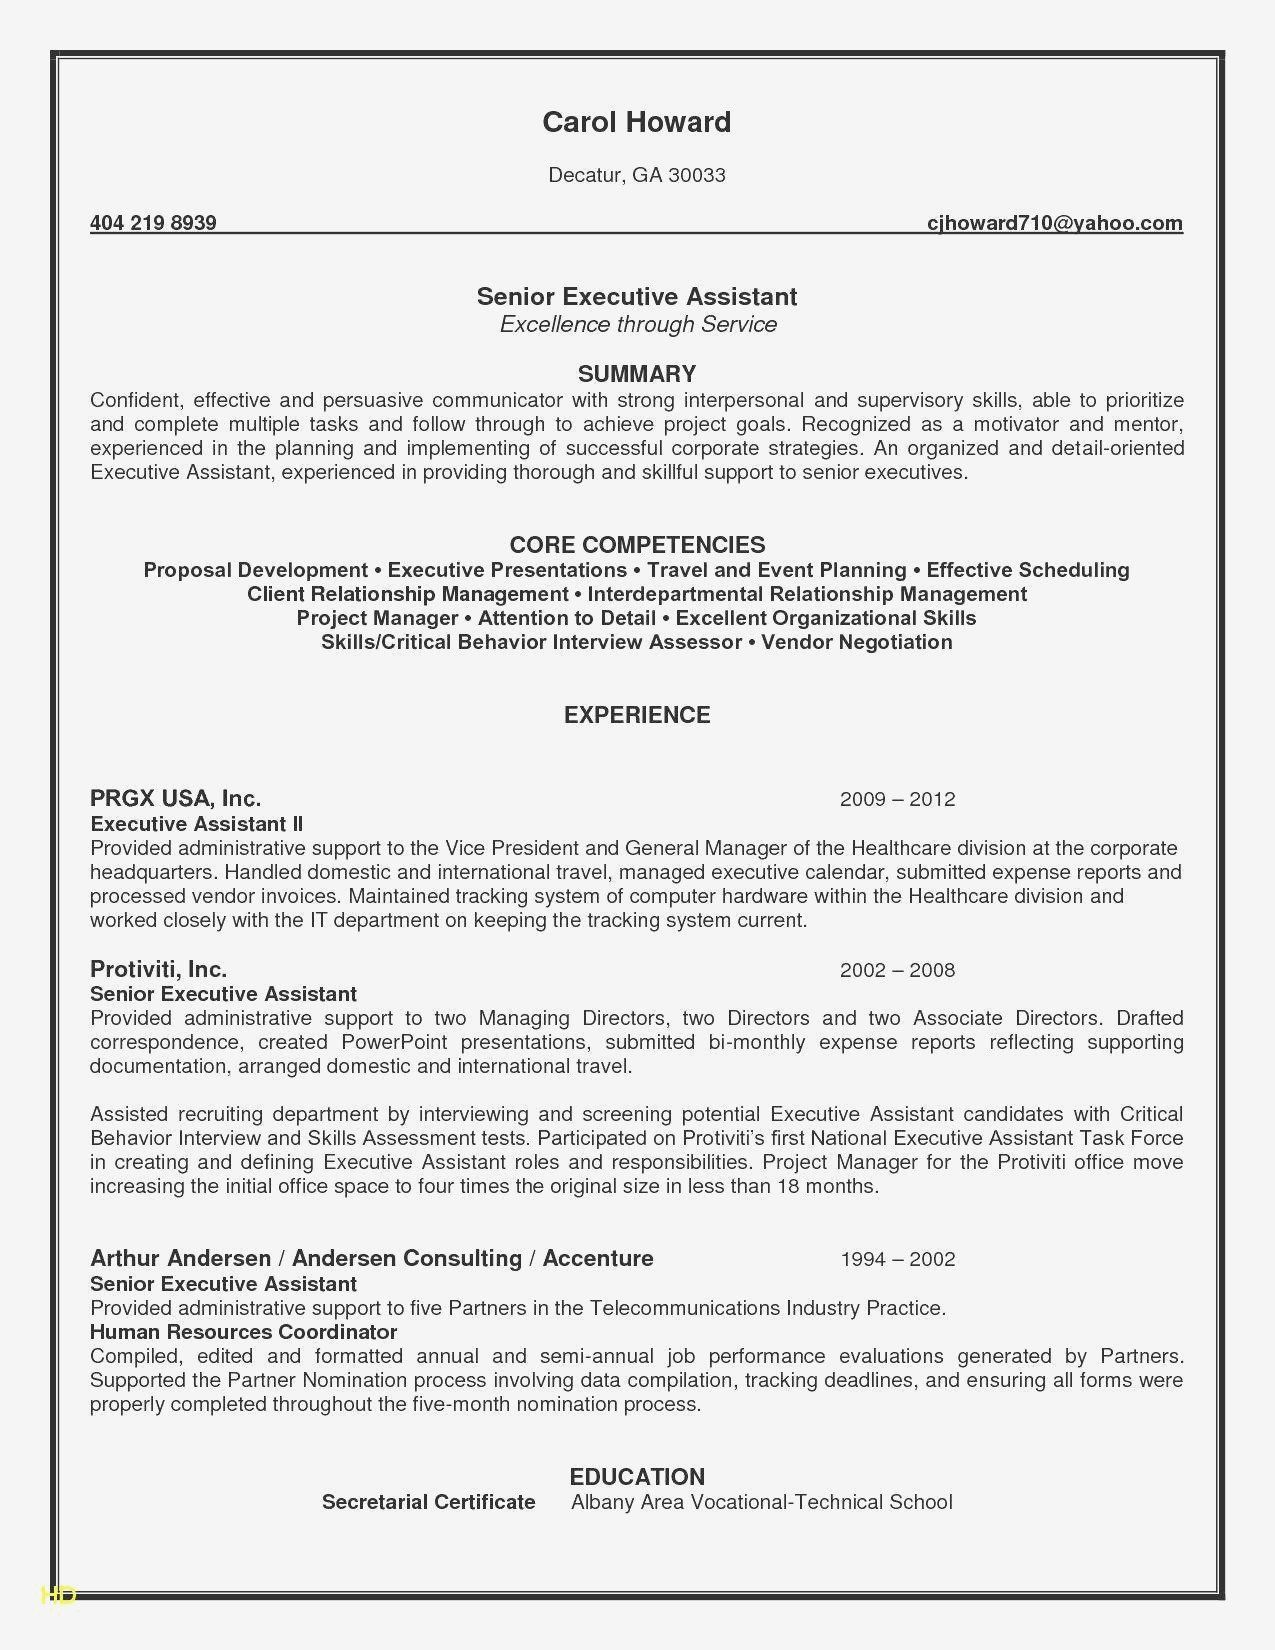 Resume Summary For Administrative Assistant Best Of Executive Summary Resume Admin Resume Summary Medical Assistant Resume Administrative Assistant Resume